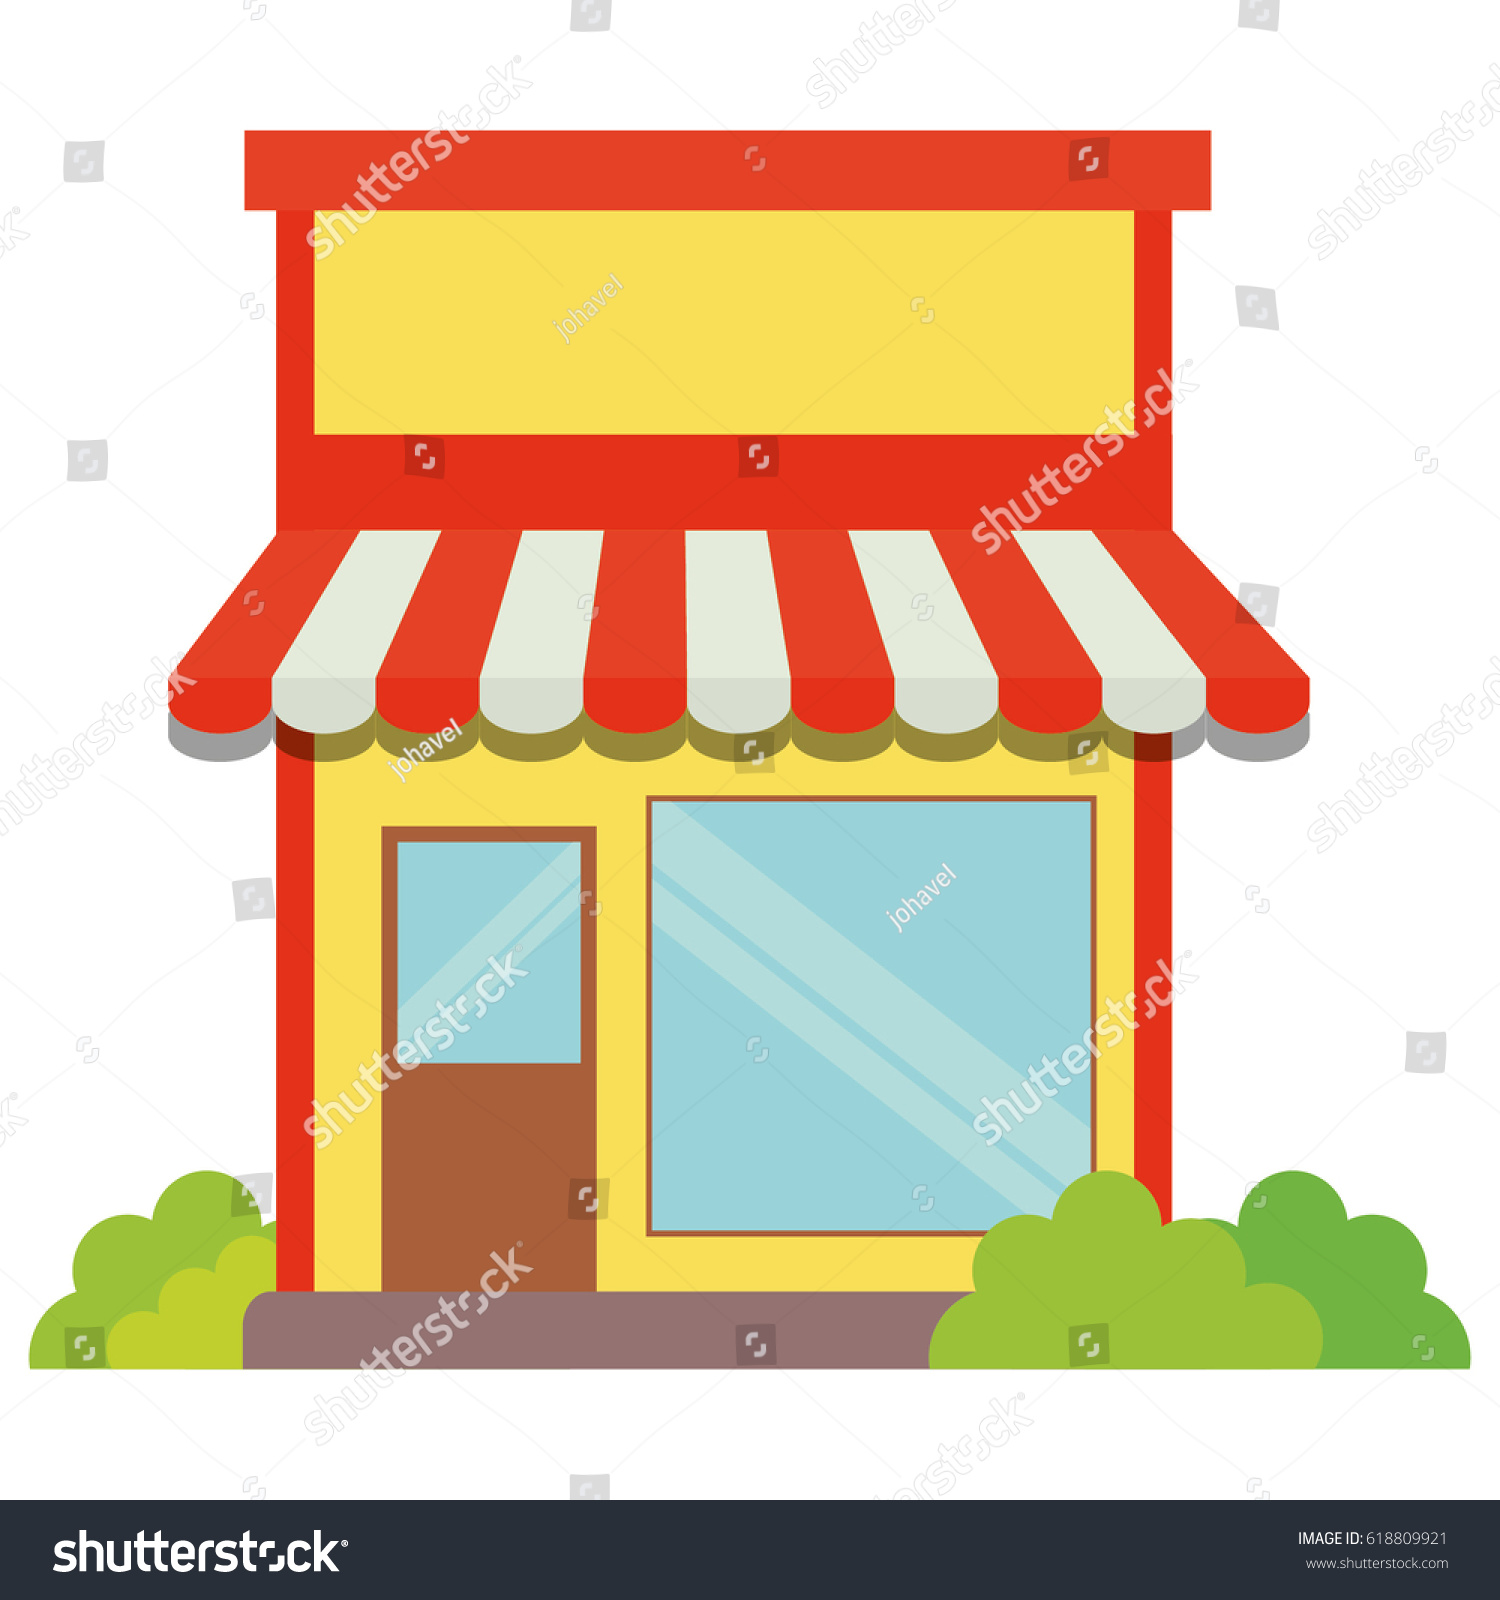 storefront facade icon image stock vector hd royalty free rh shutterstock com Cartoon Storefront storefront window clipart